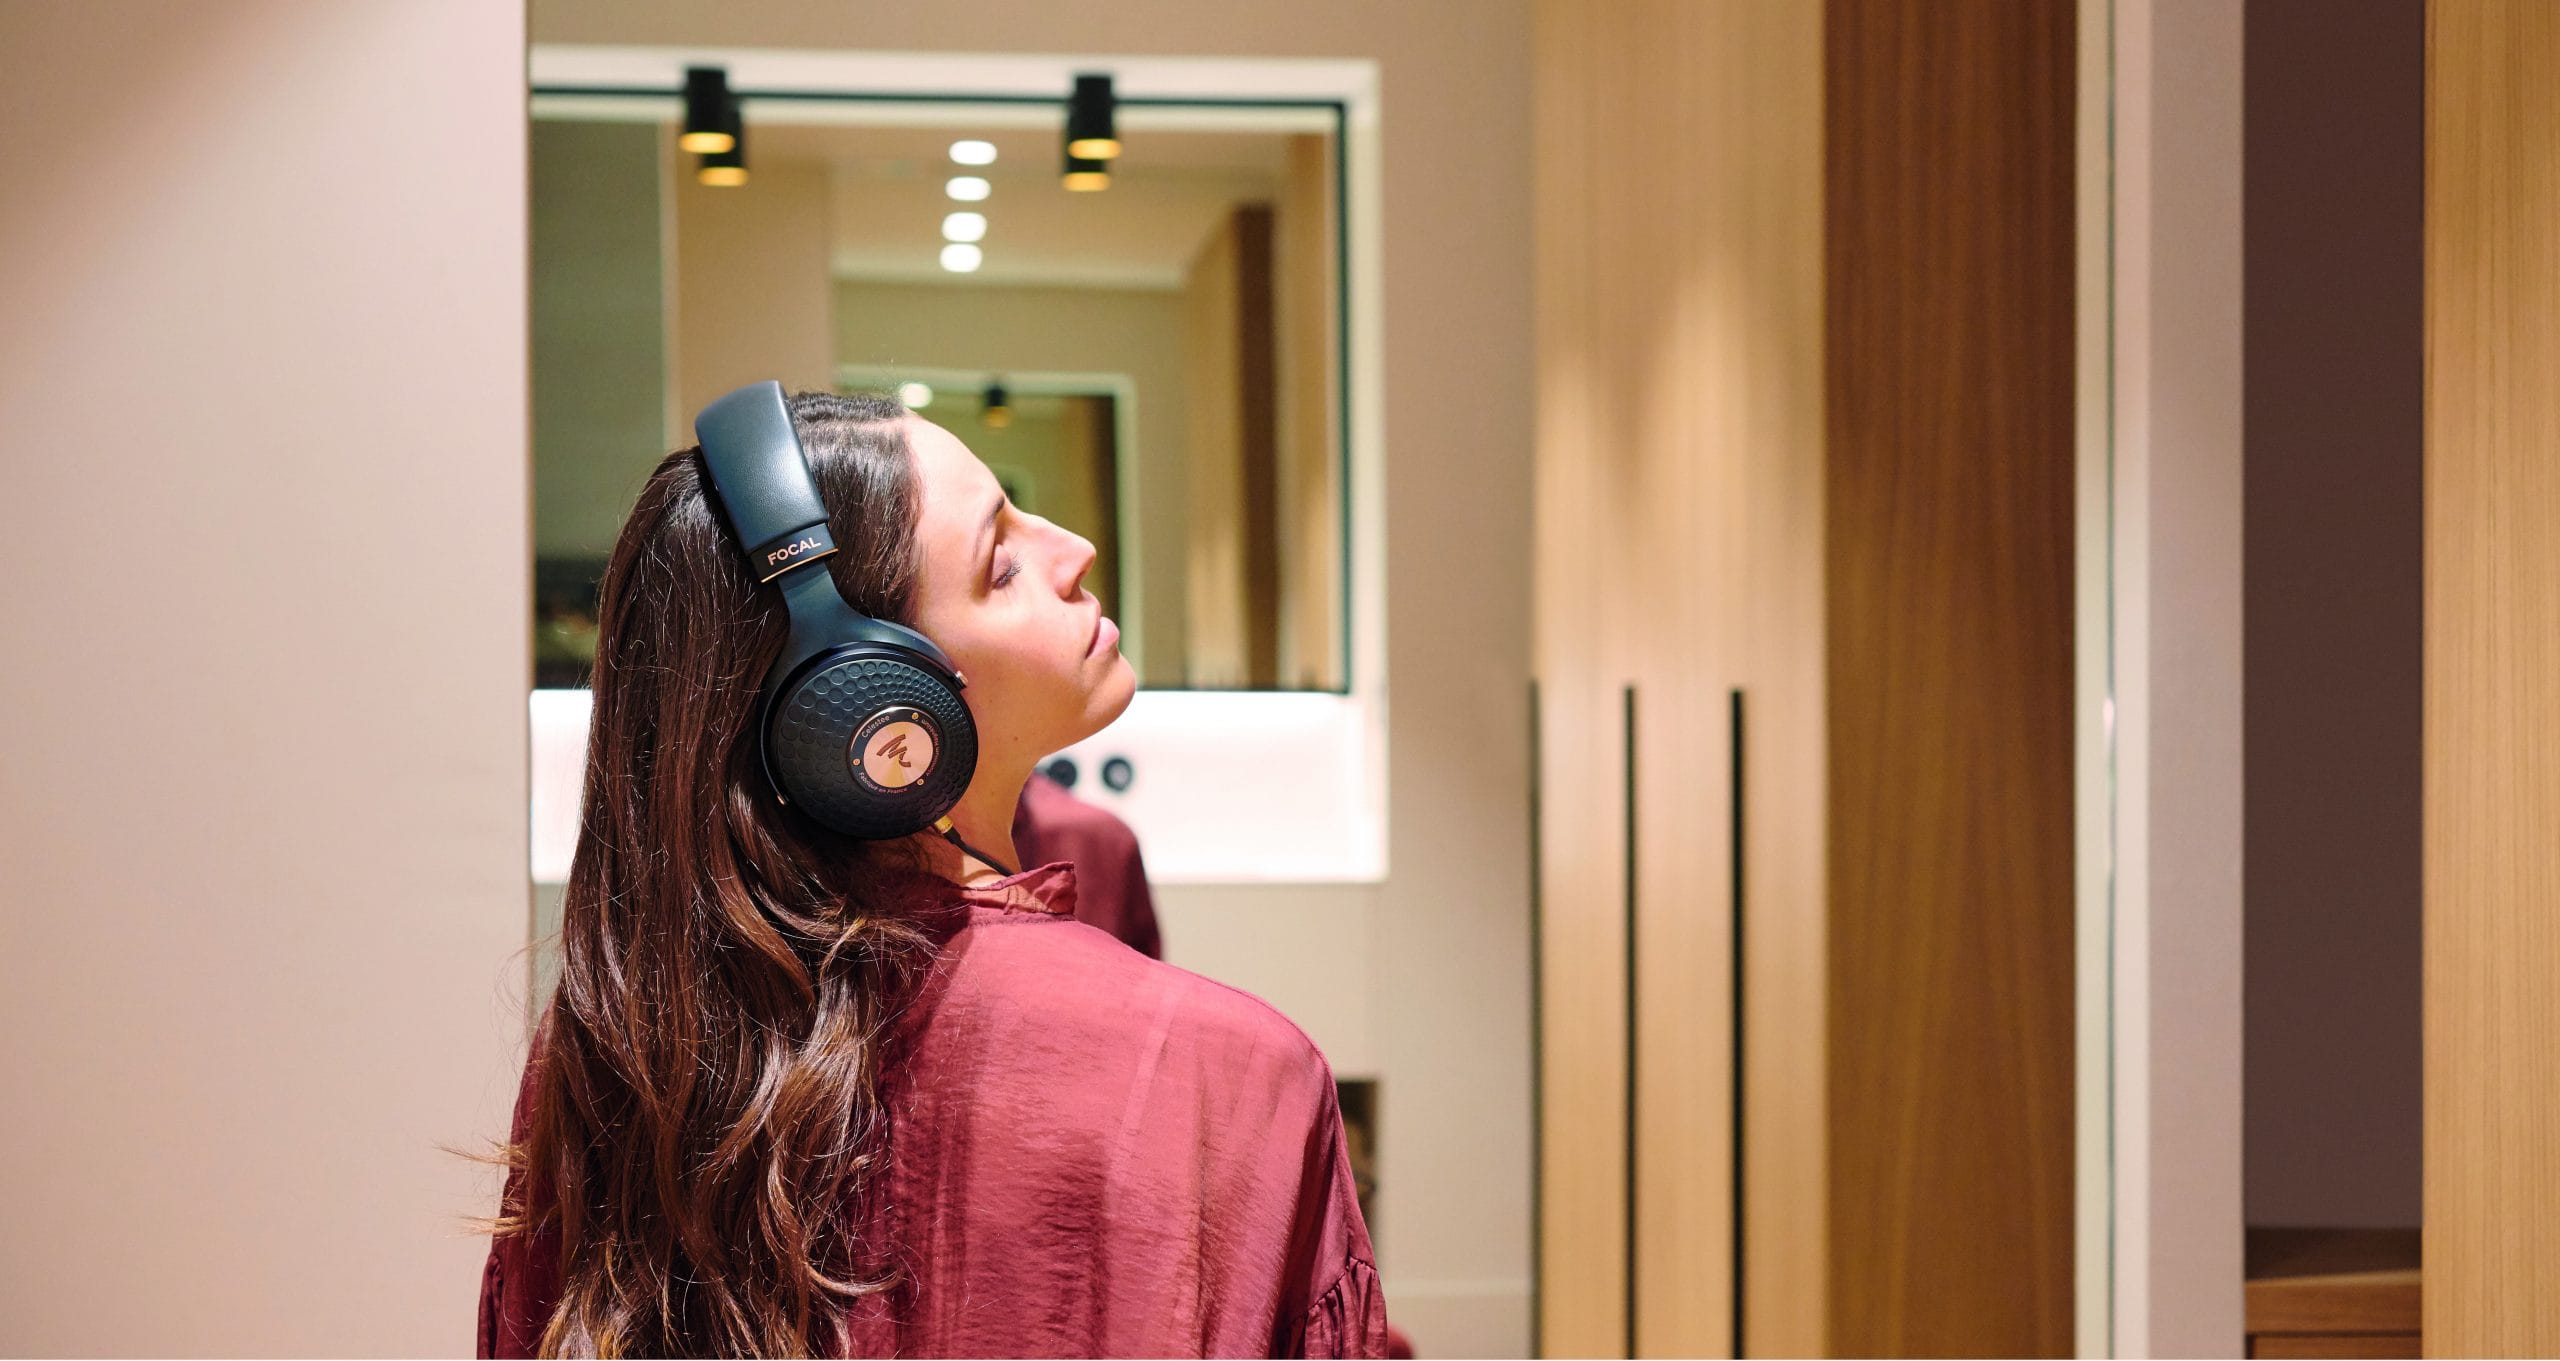 Focal releases a new, luxurious mobile headphones for AUD$1,399